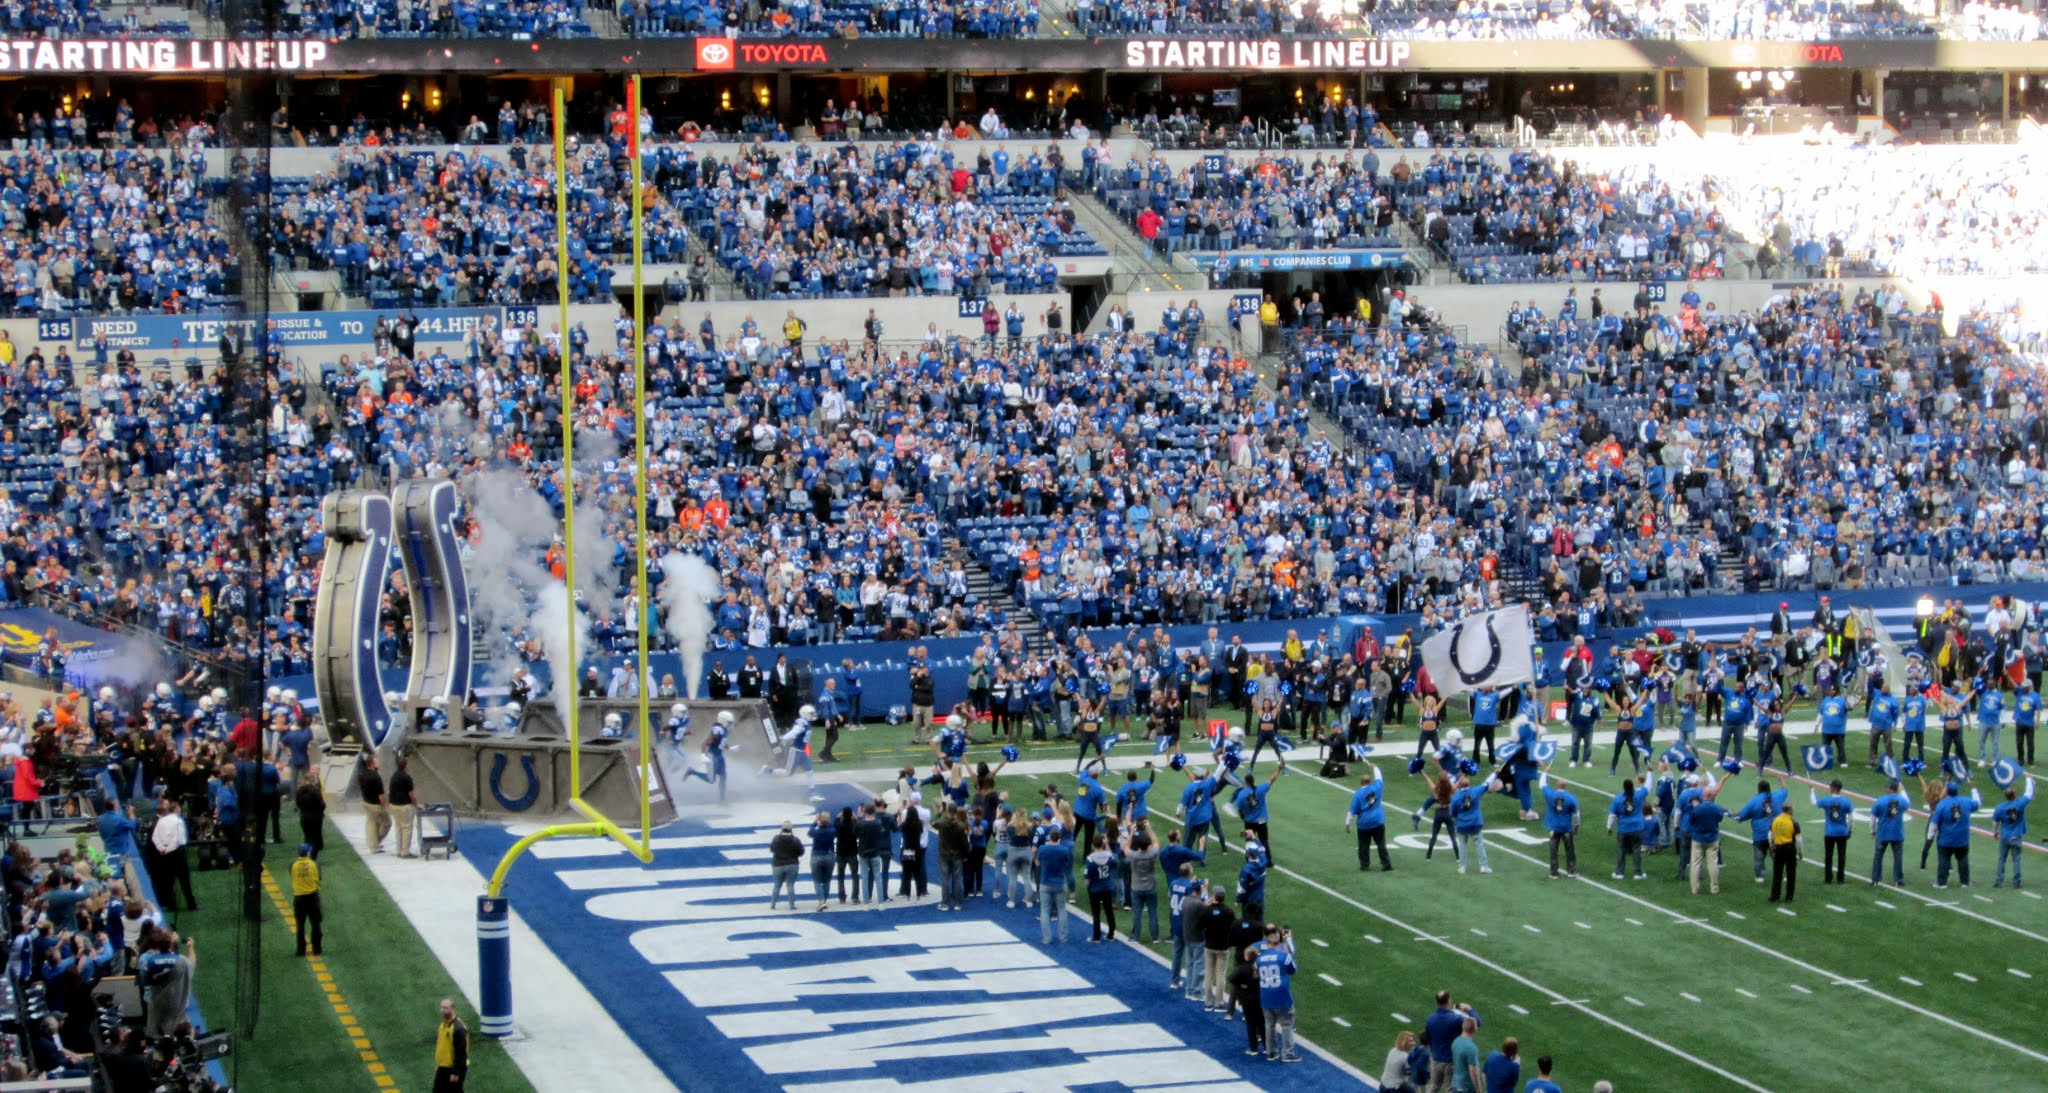 Indianapolis Colts players running onto the field before their game against the Denver Broncos